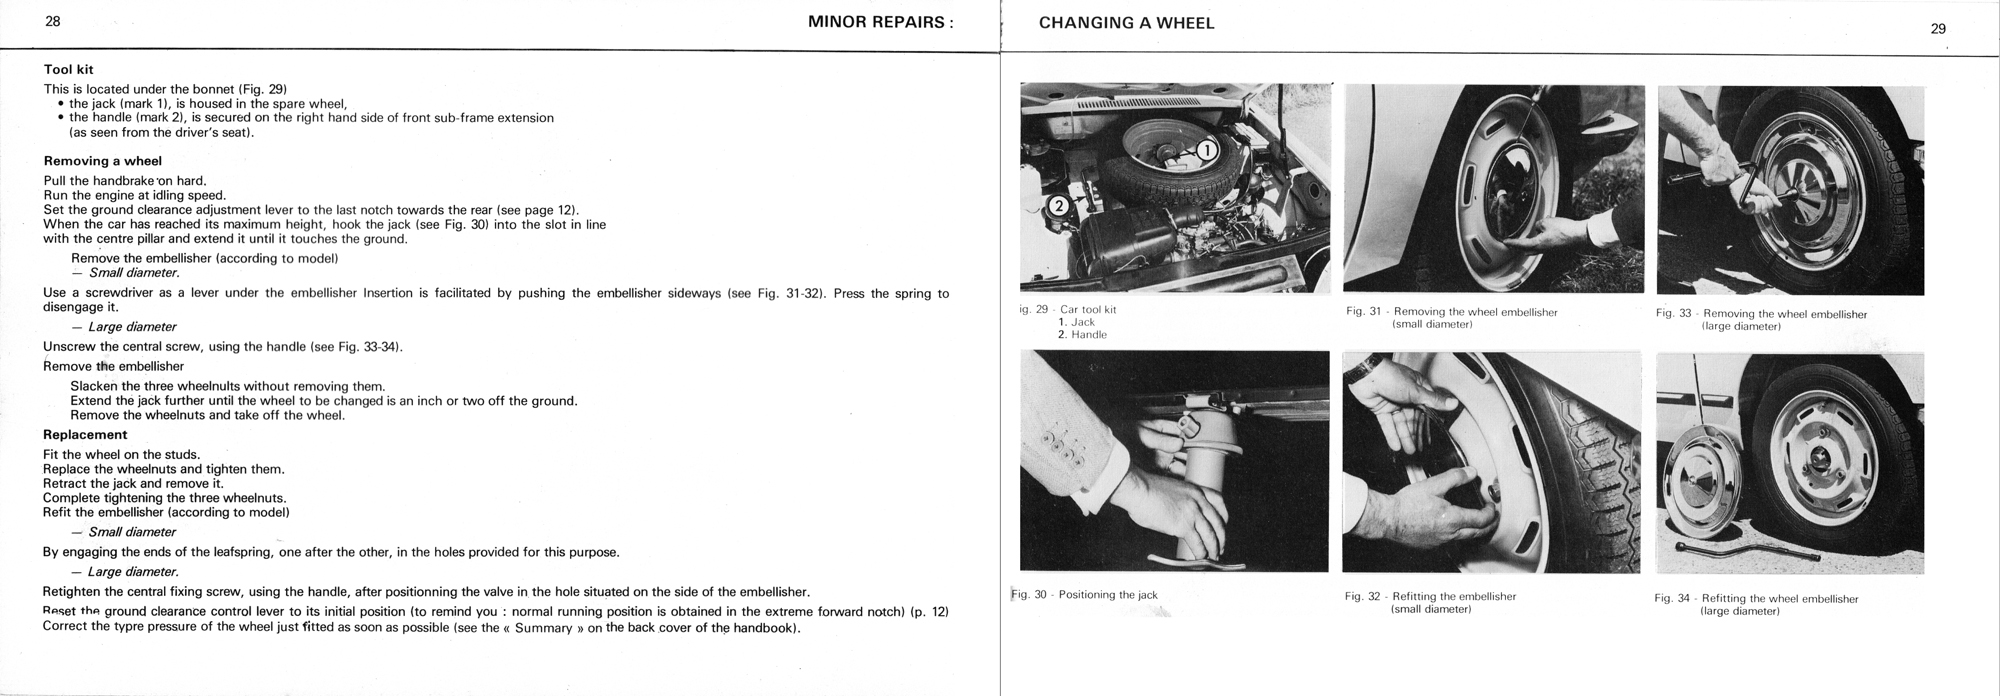 1976 Citroën GS owner's manual Page 2